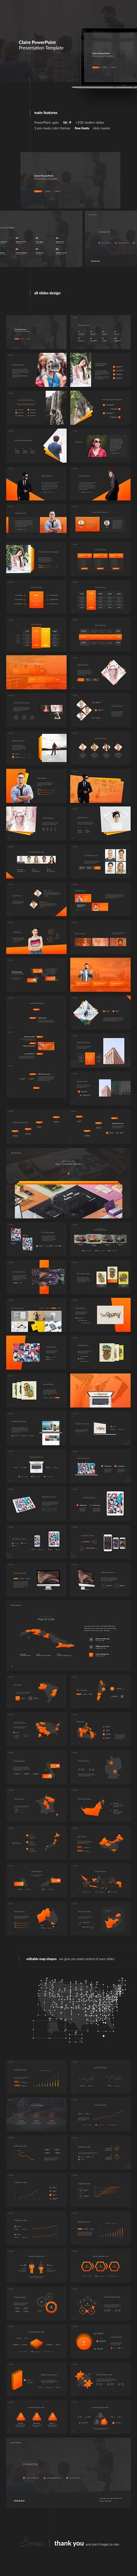 Claire PowerPoint Template — Powerpoint PPTX #deck #creative • Download ➝ https://graphicriver.net/item/claire-powerpoint-template/19228241?ref=pxcr